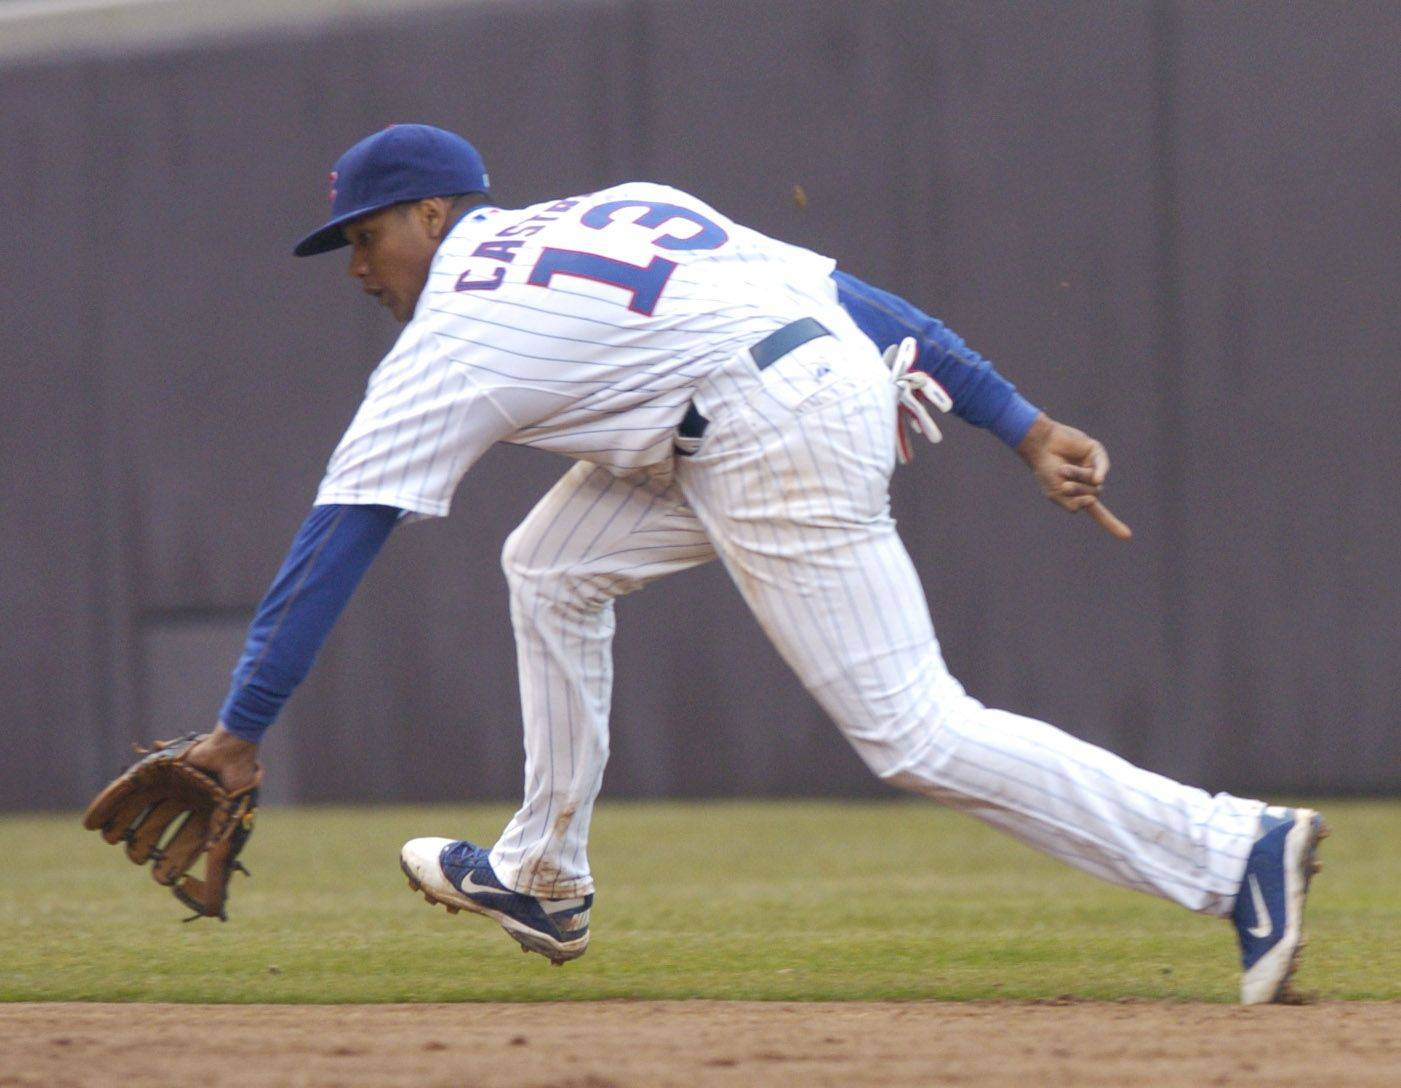 Cubs shortstop Starlin Castro positions himself to field a ground ball.